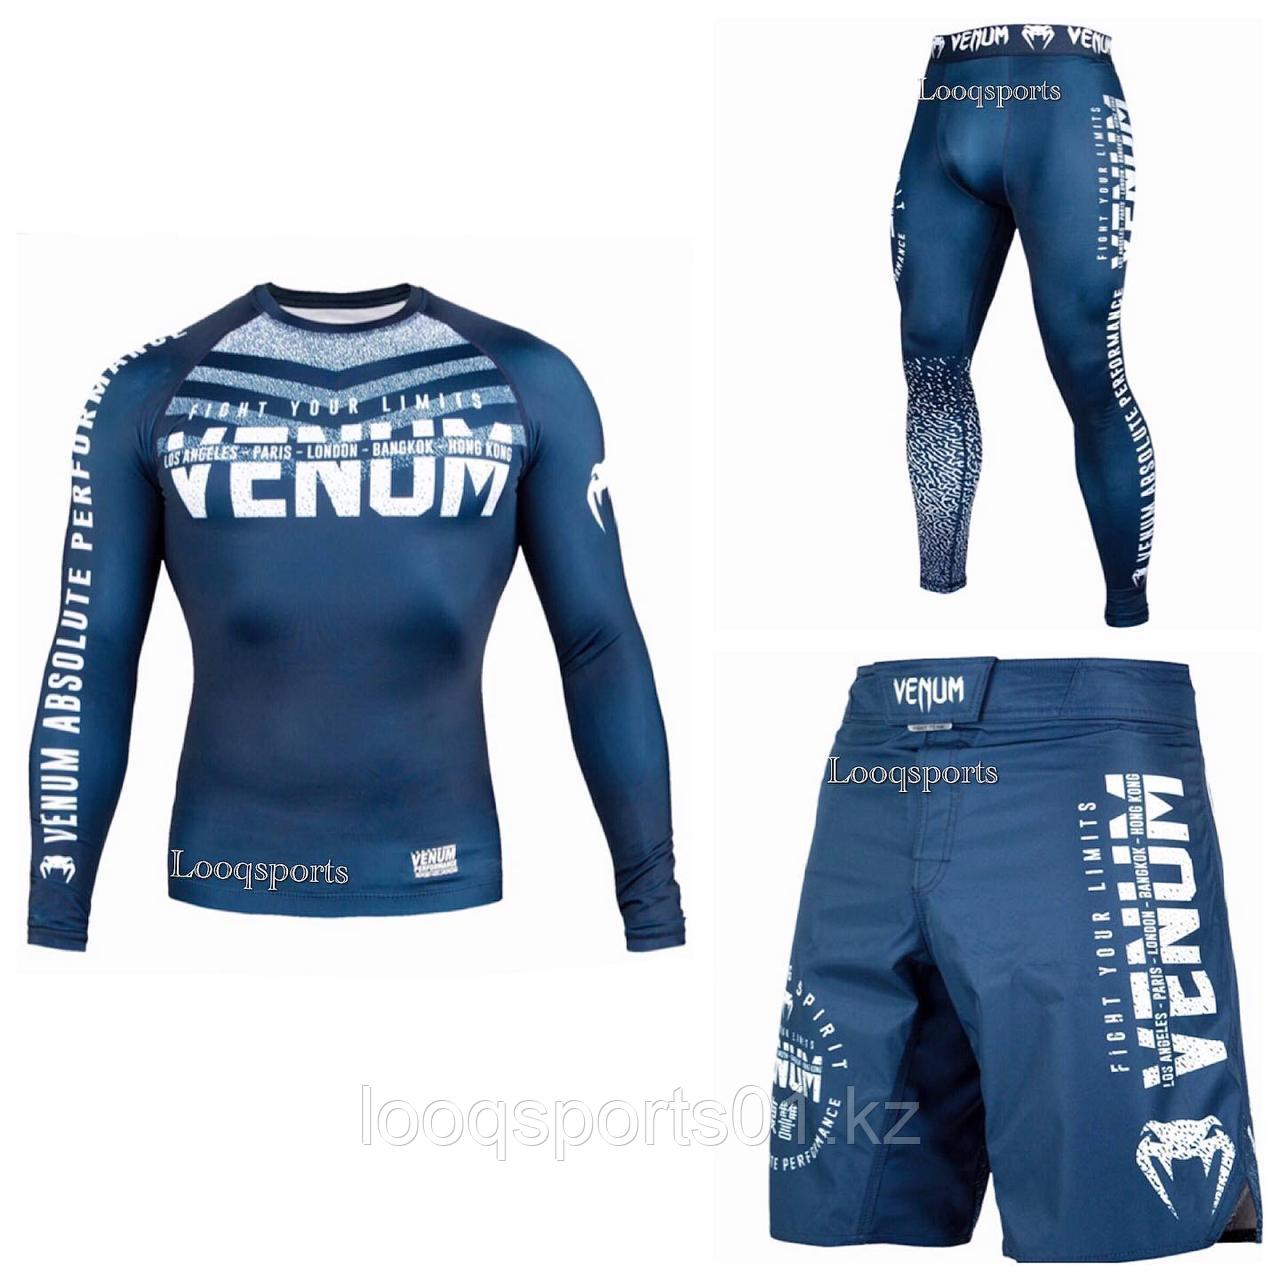 Рашгард 3в1 VENUM SIGNATURE NAVY BLUE/WHITE